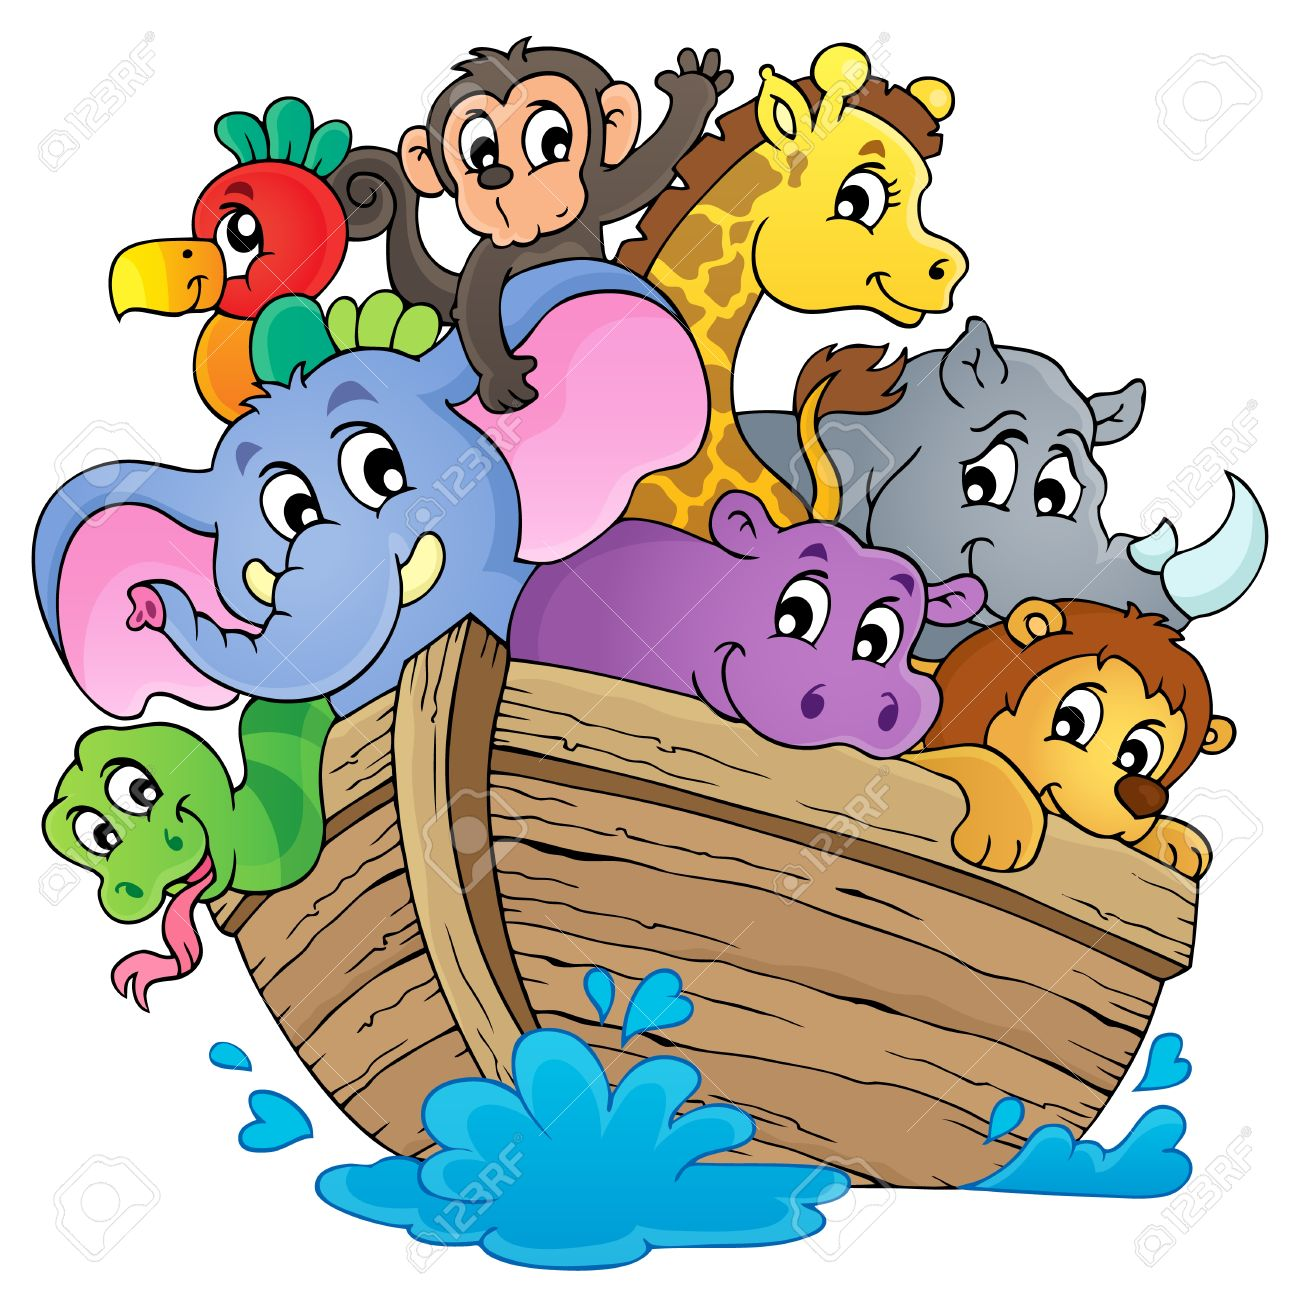 Noahs ark theme image Stock Vector - 28029388